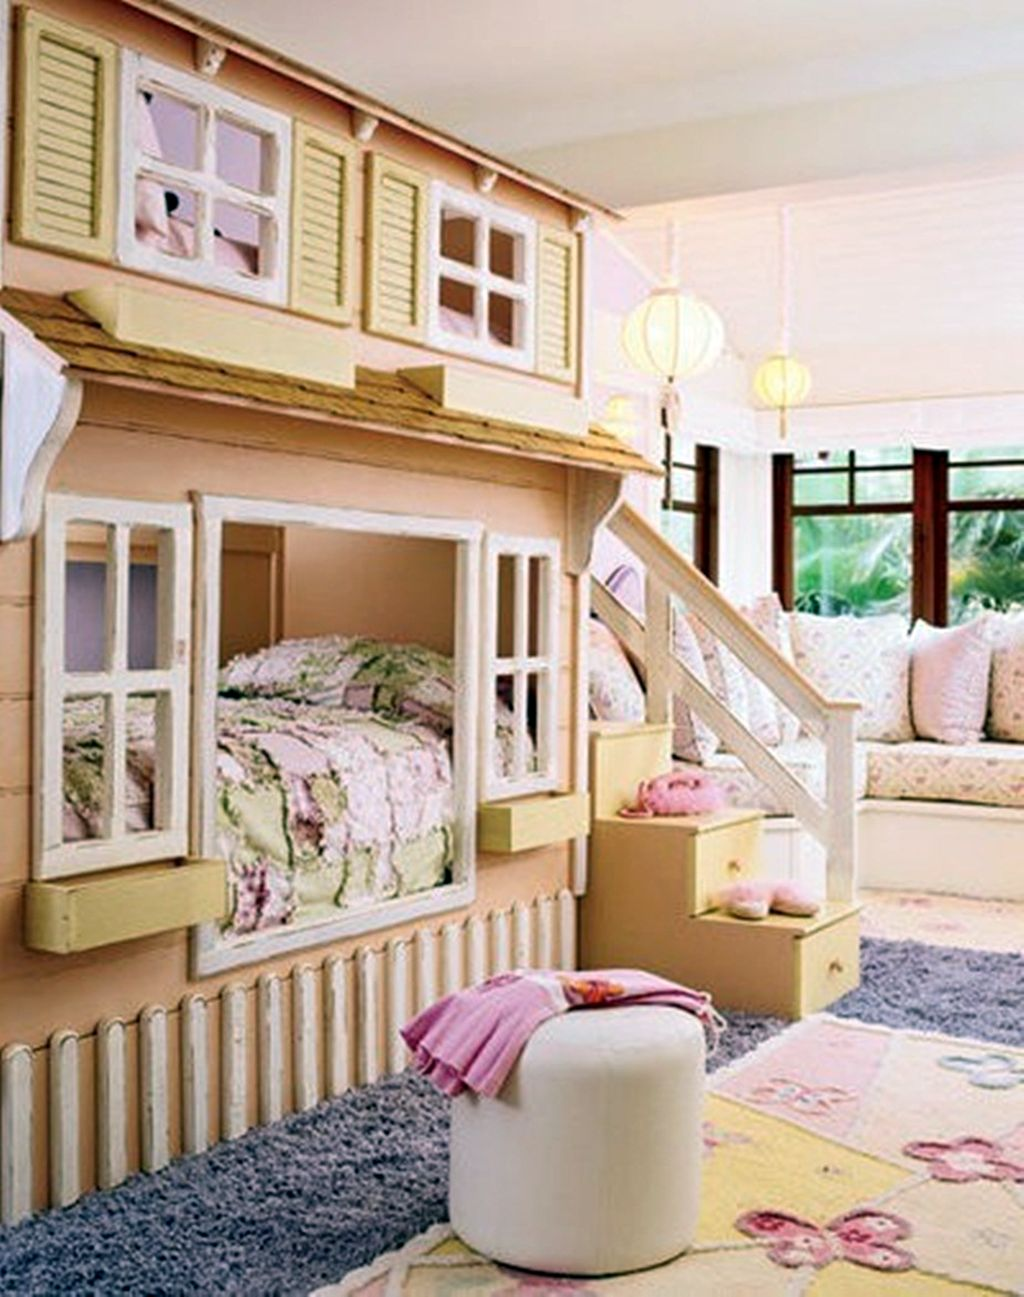 Merveilleux Gallery For Cute Girls Bedroom Ideas